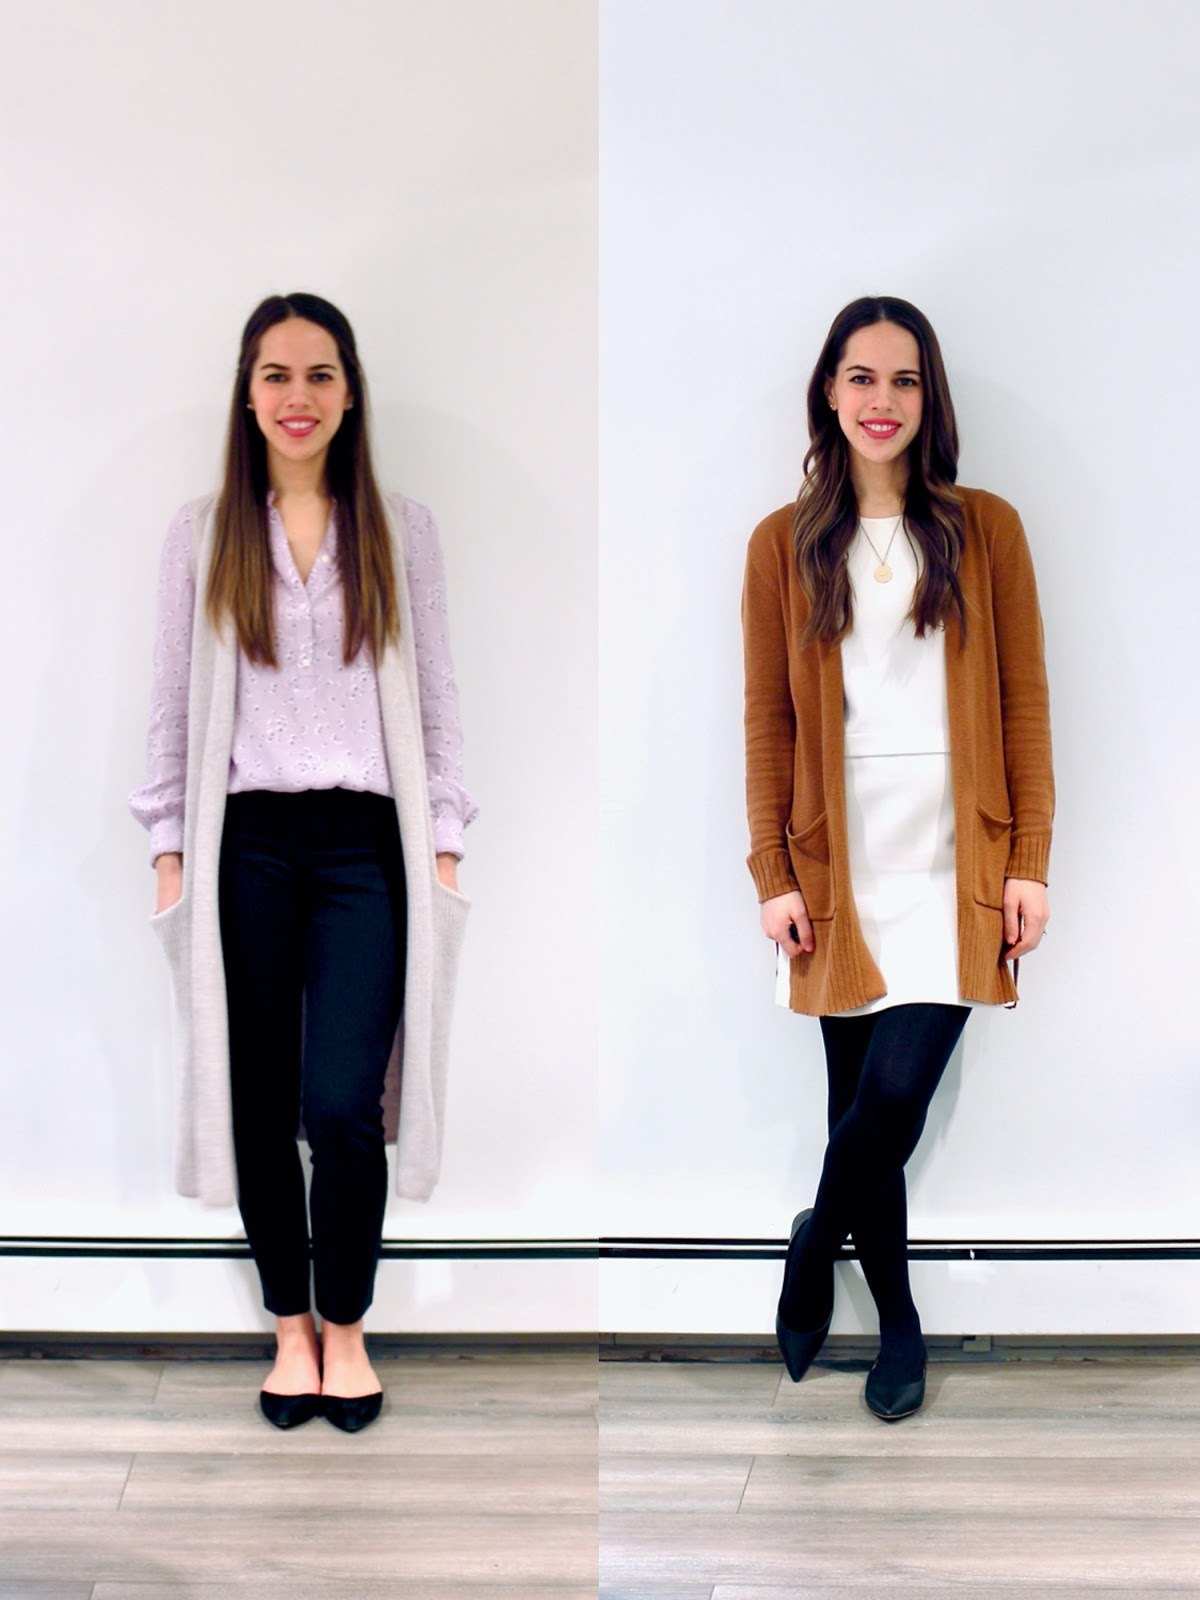 Jules in Flats - March Outfits Week 1 (Business Casual Winter Workwear on a Budget)